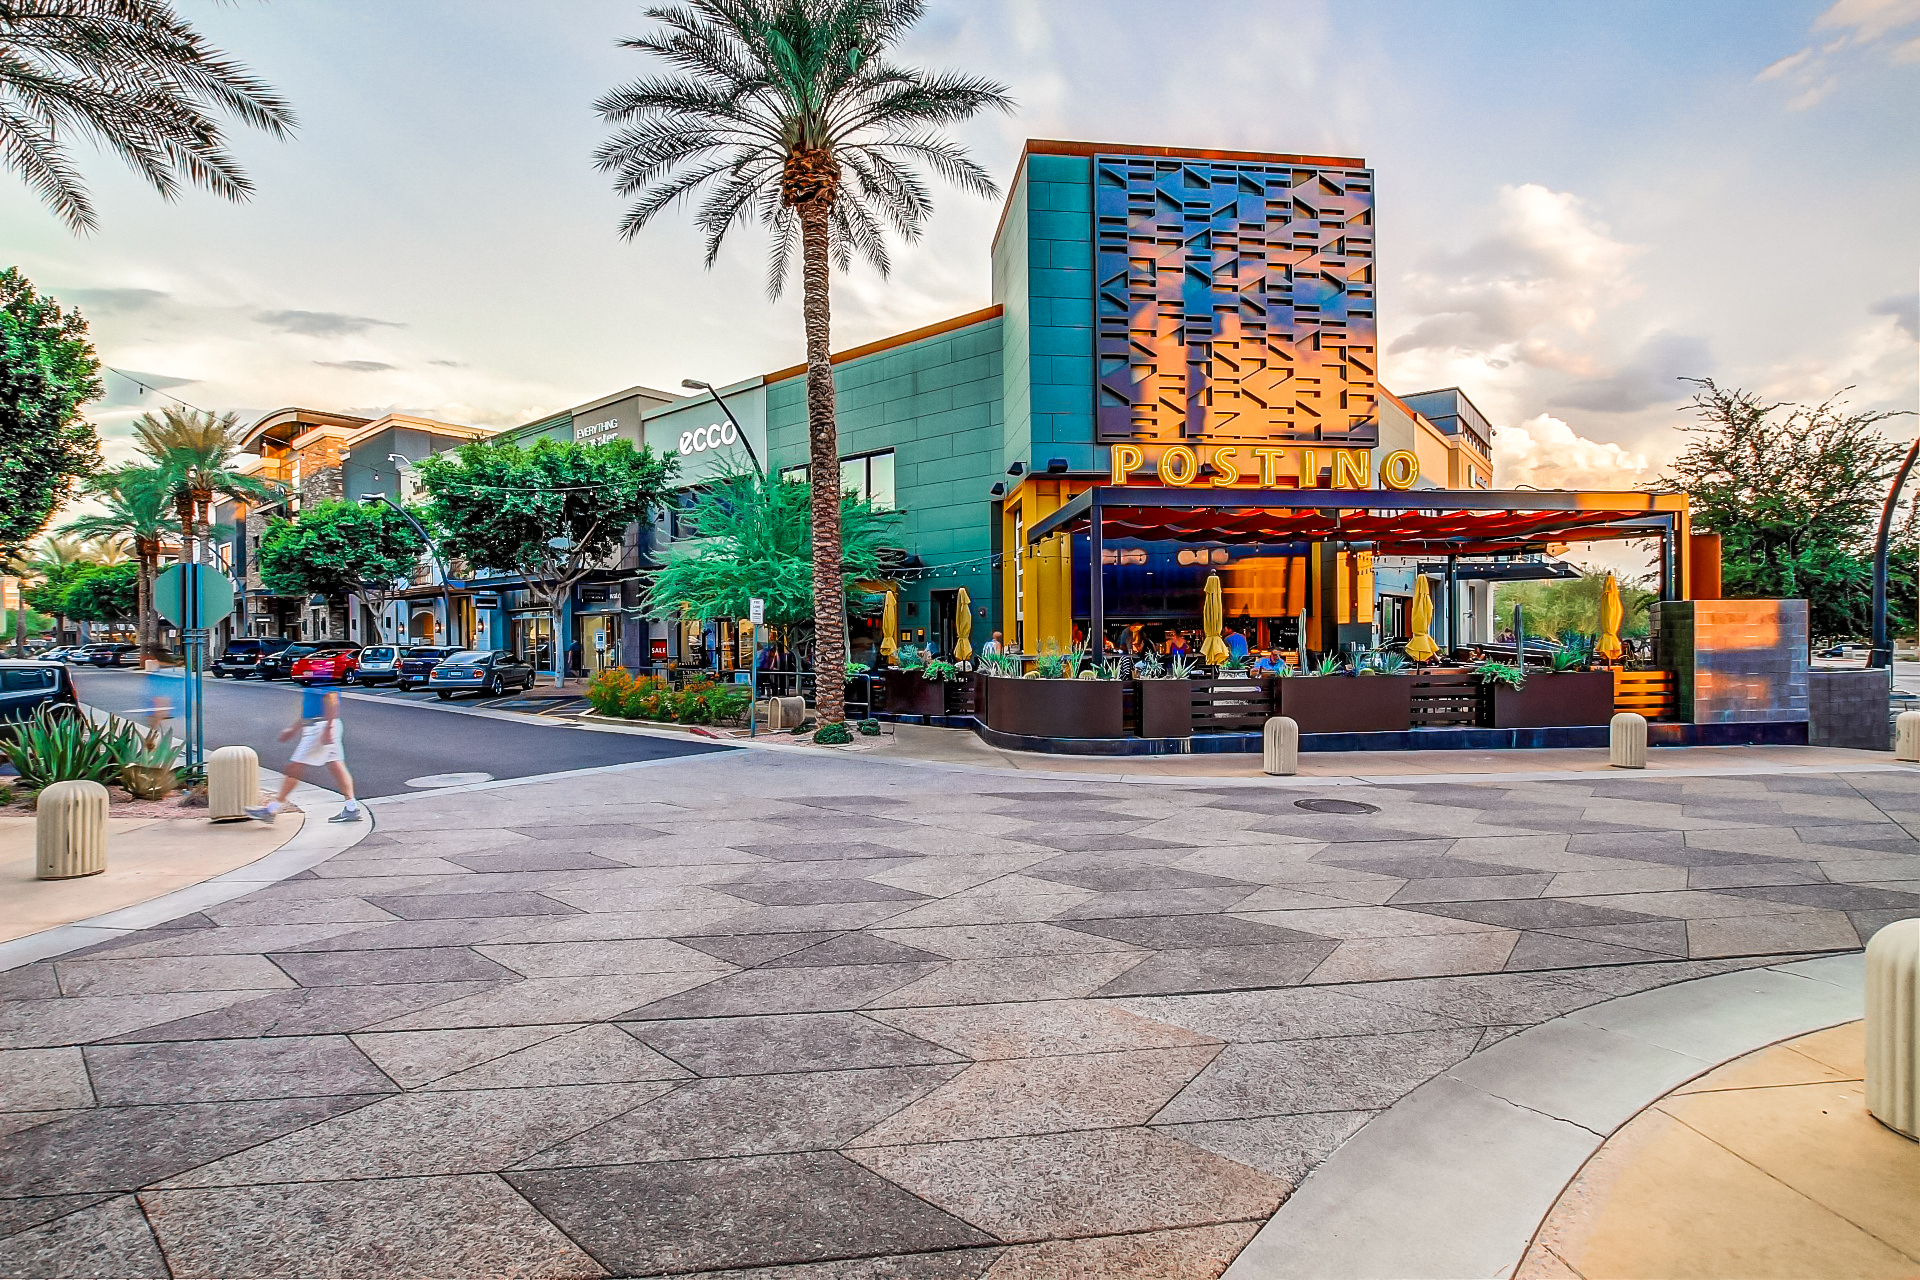 How to Spend a Day in Old Town Scottsdale